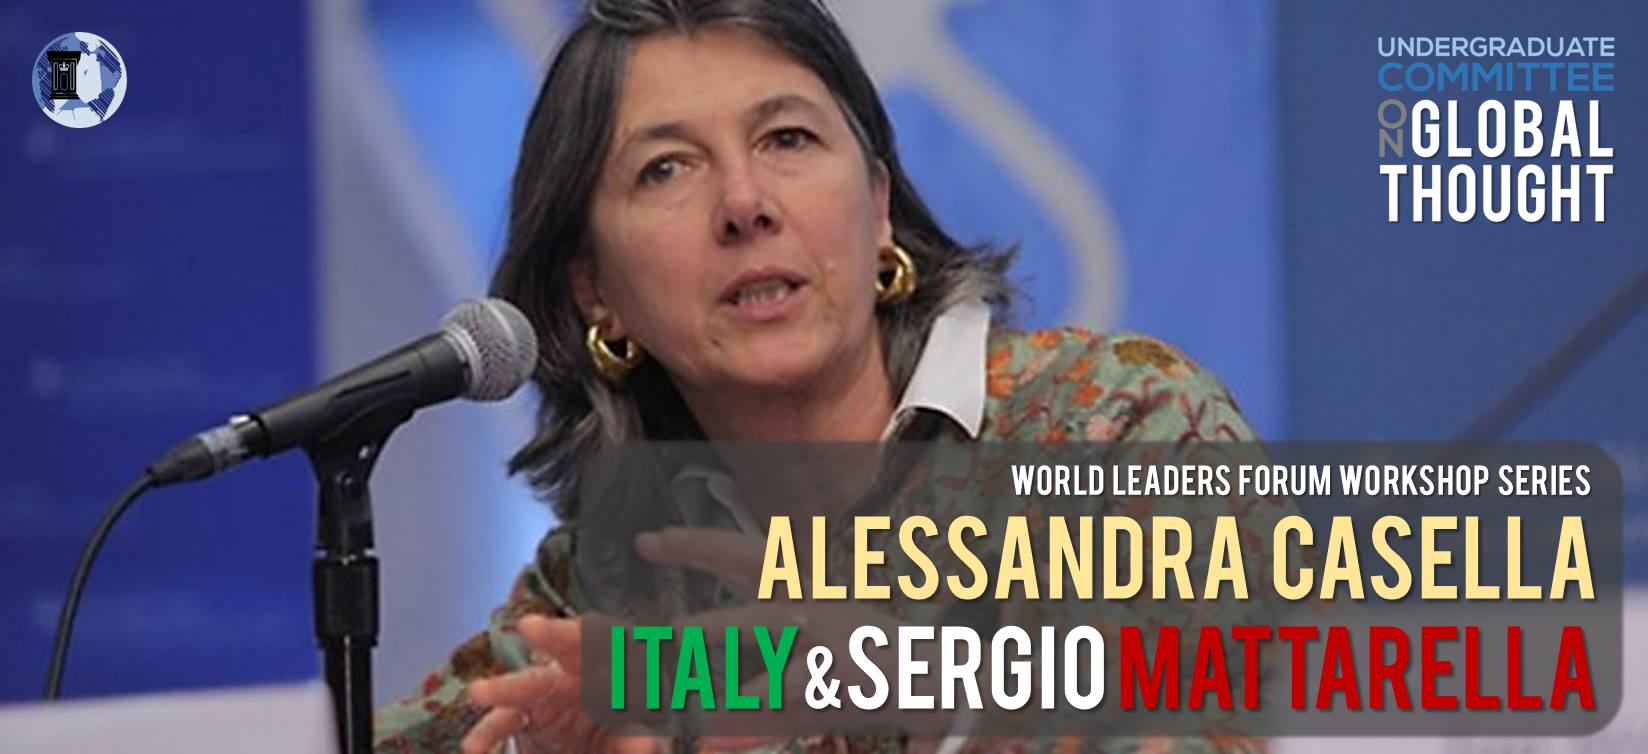 UCGT Workshop with Alessandra Casella - CU Global Thought